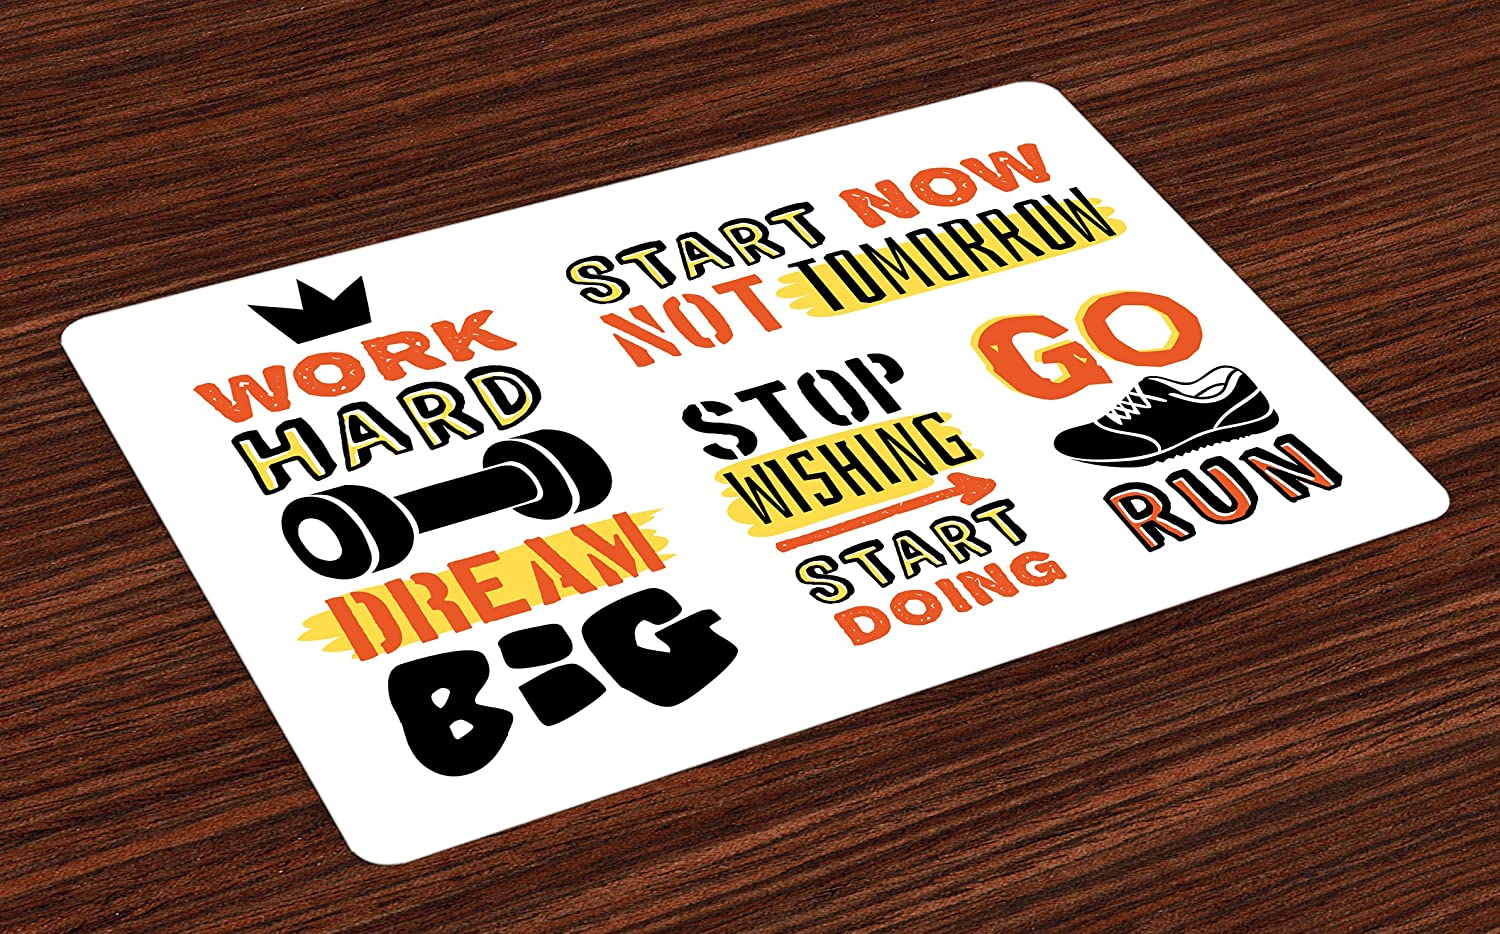 Ambesonne Fitness Place Mats Set of 4, Sports Affirmation Positive Words Motivational Typography Design Sneakers, Washable Fabric Placemats for Dining Room Kitchen Table Decor, Orange Yellow Black